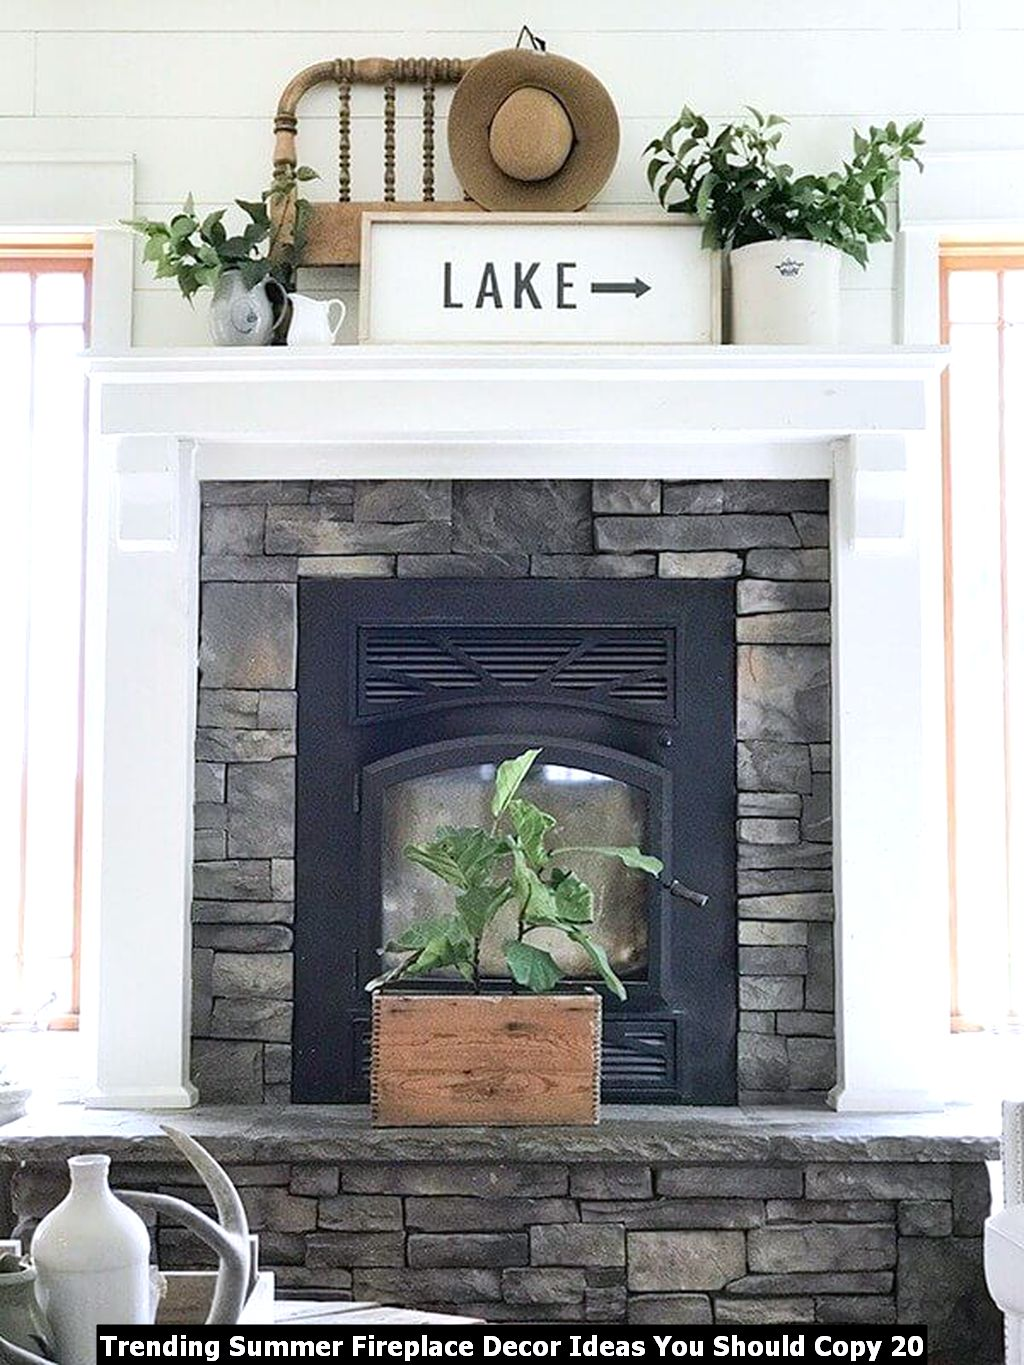 Trending Summer Fireplace Decor Ideas You Should Copy 20